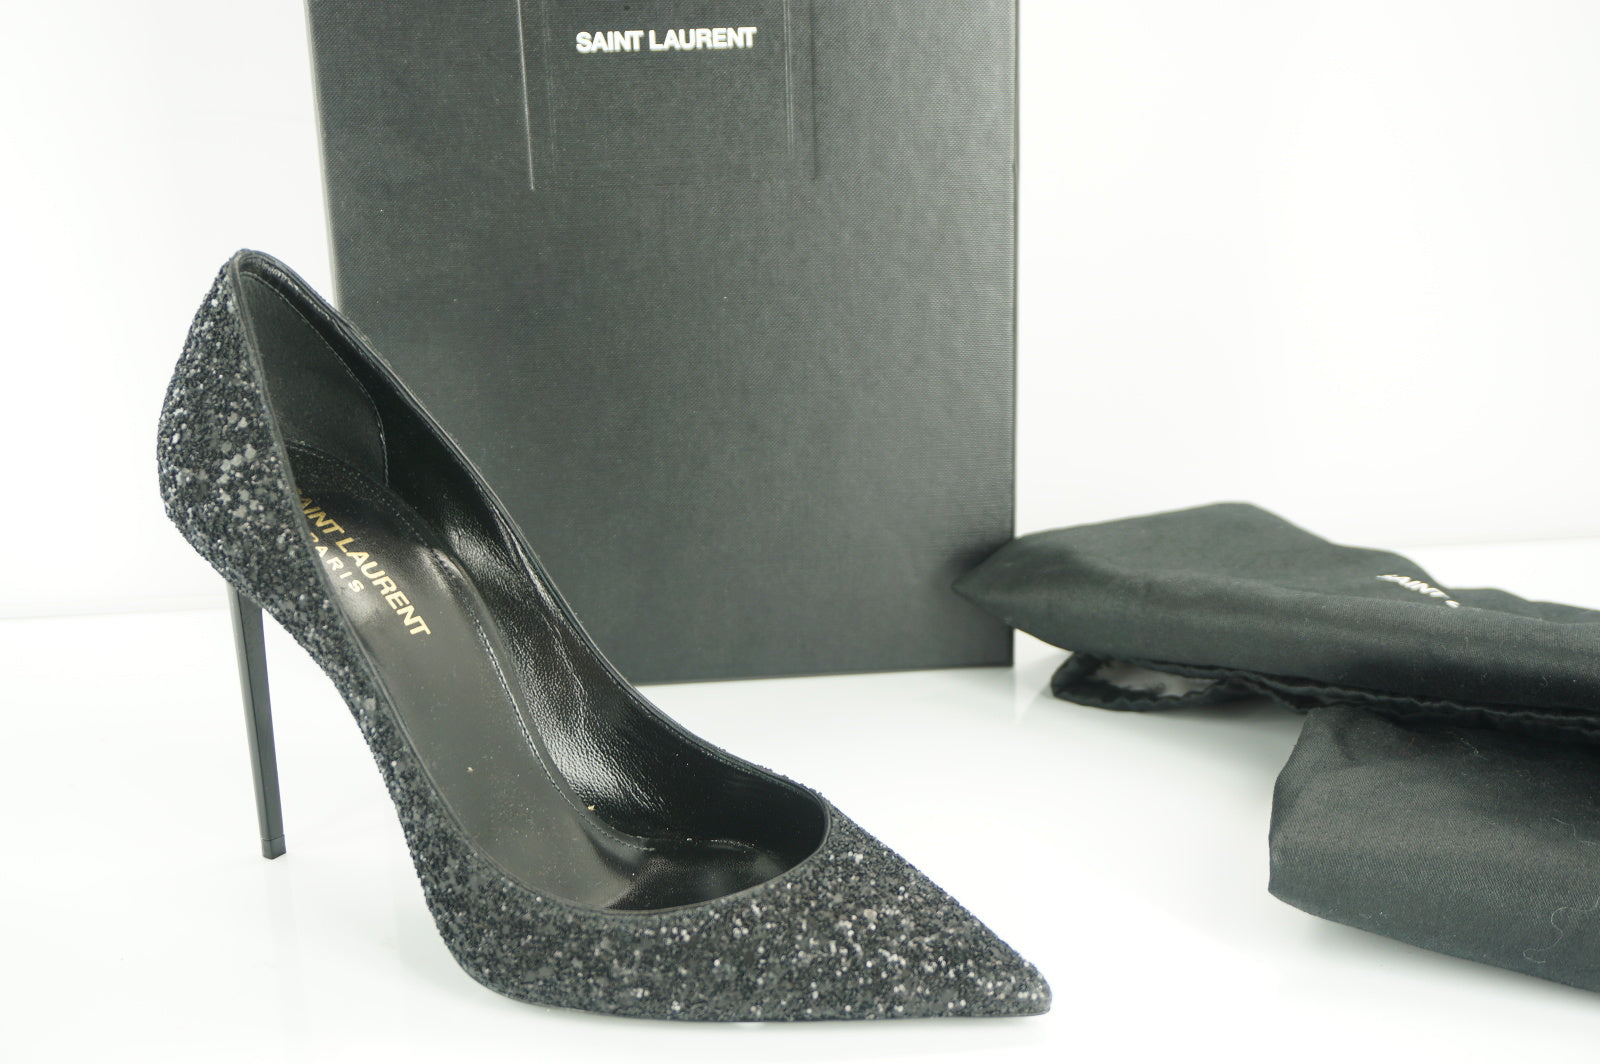 Saint Laurent Zoe 110MM Super Black Glitter Pointy Toe Pumps SZ 38.5 NIB $795